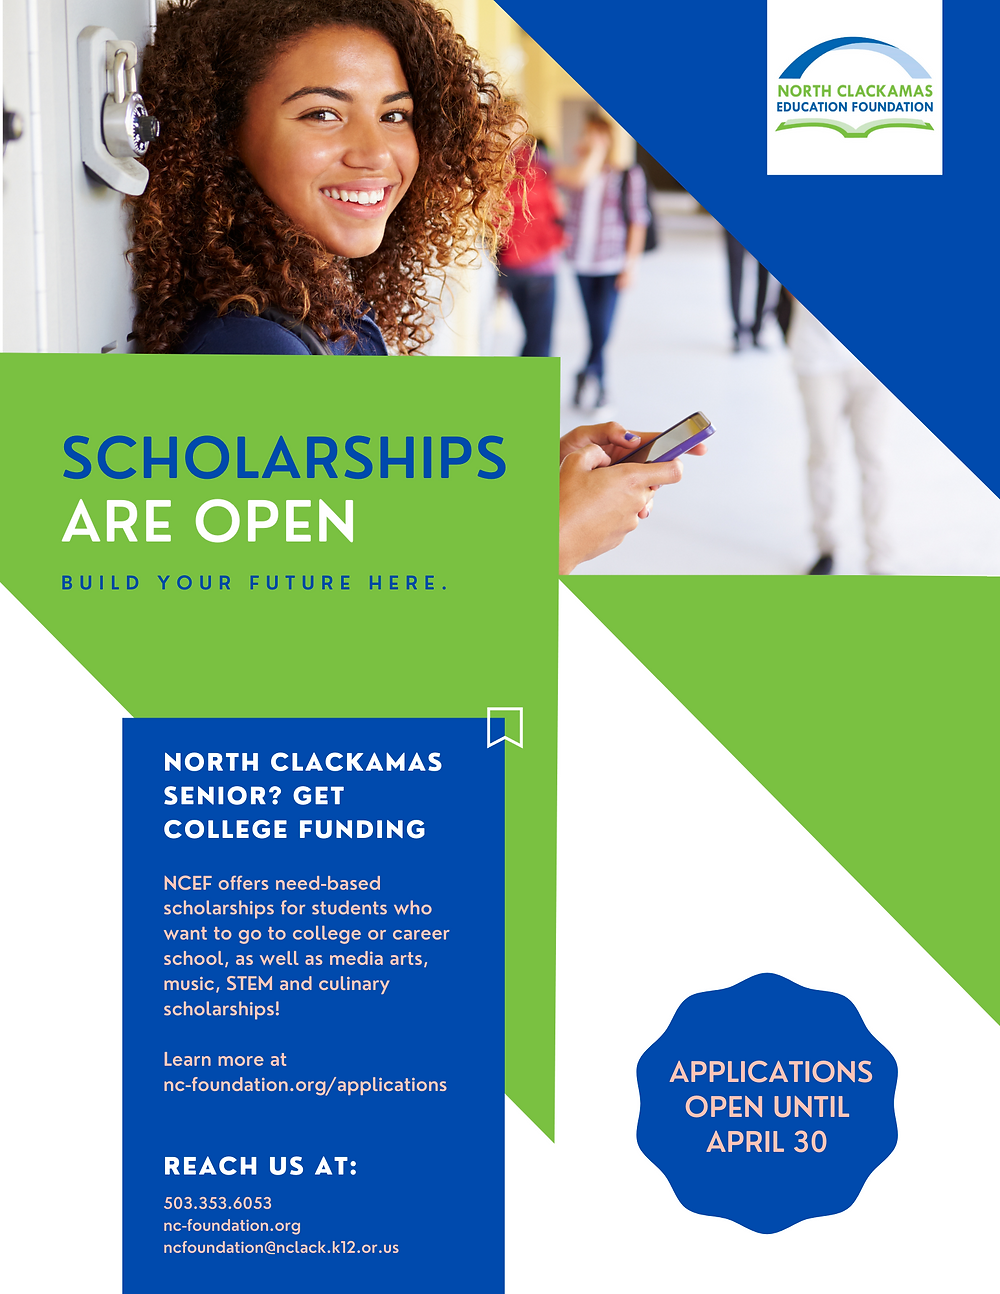 NCSD Students can get 2021 scholarships for college and trade school from NCEF! Applications are open until April 30.